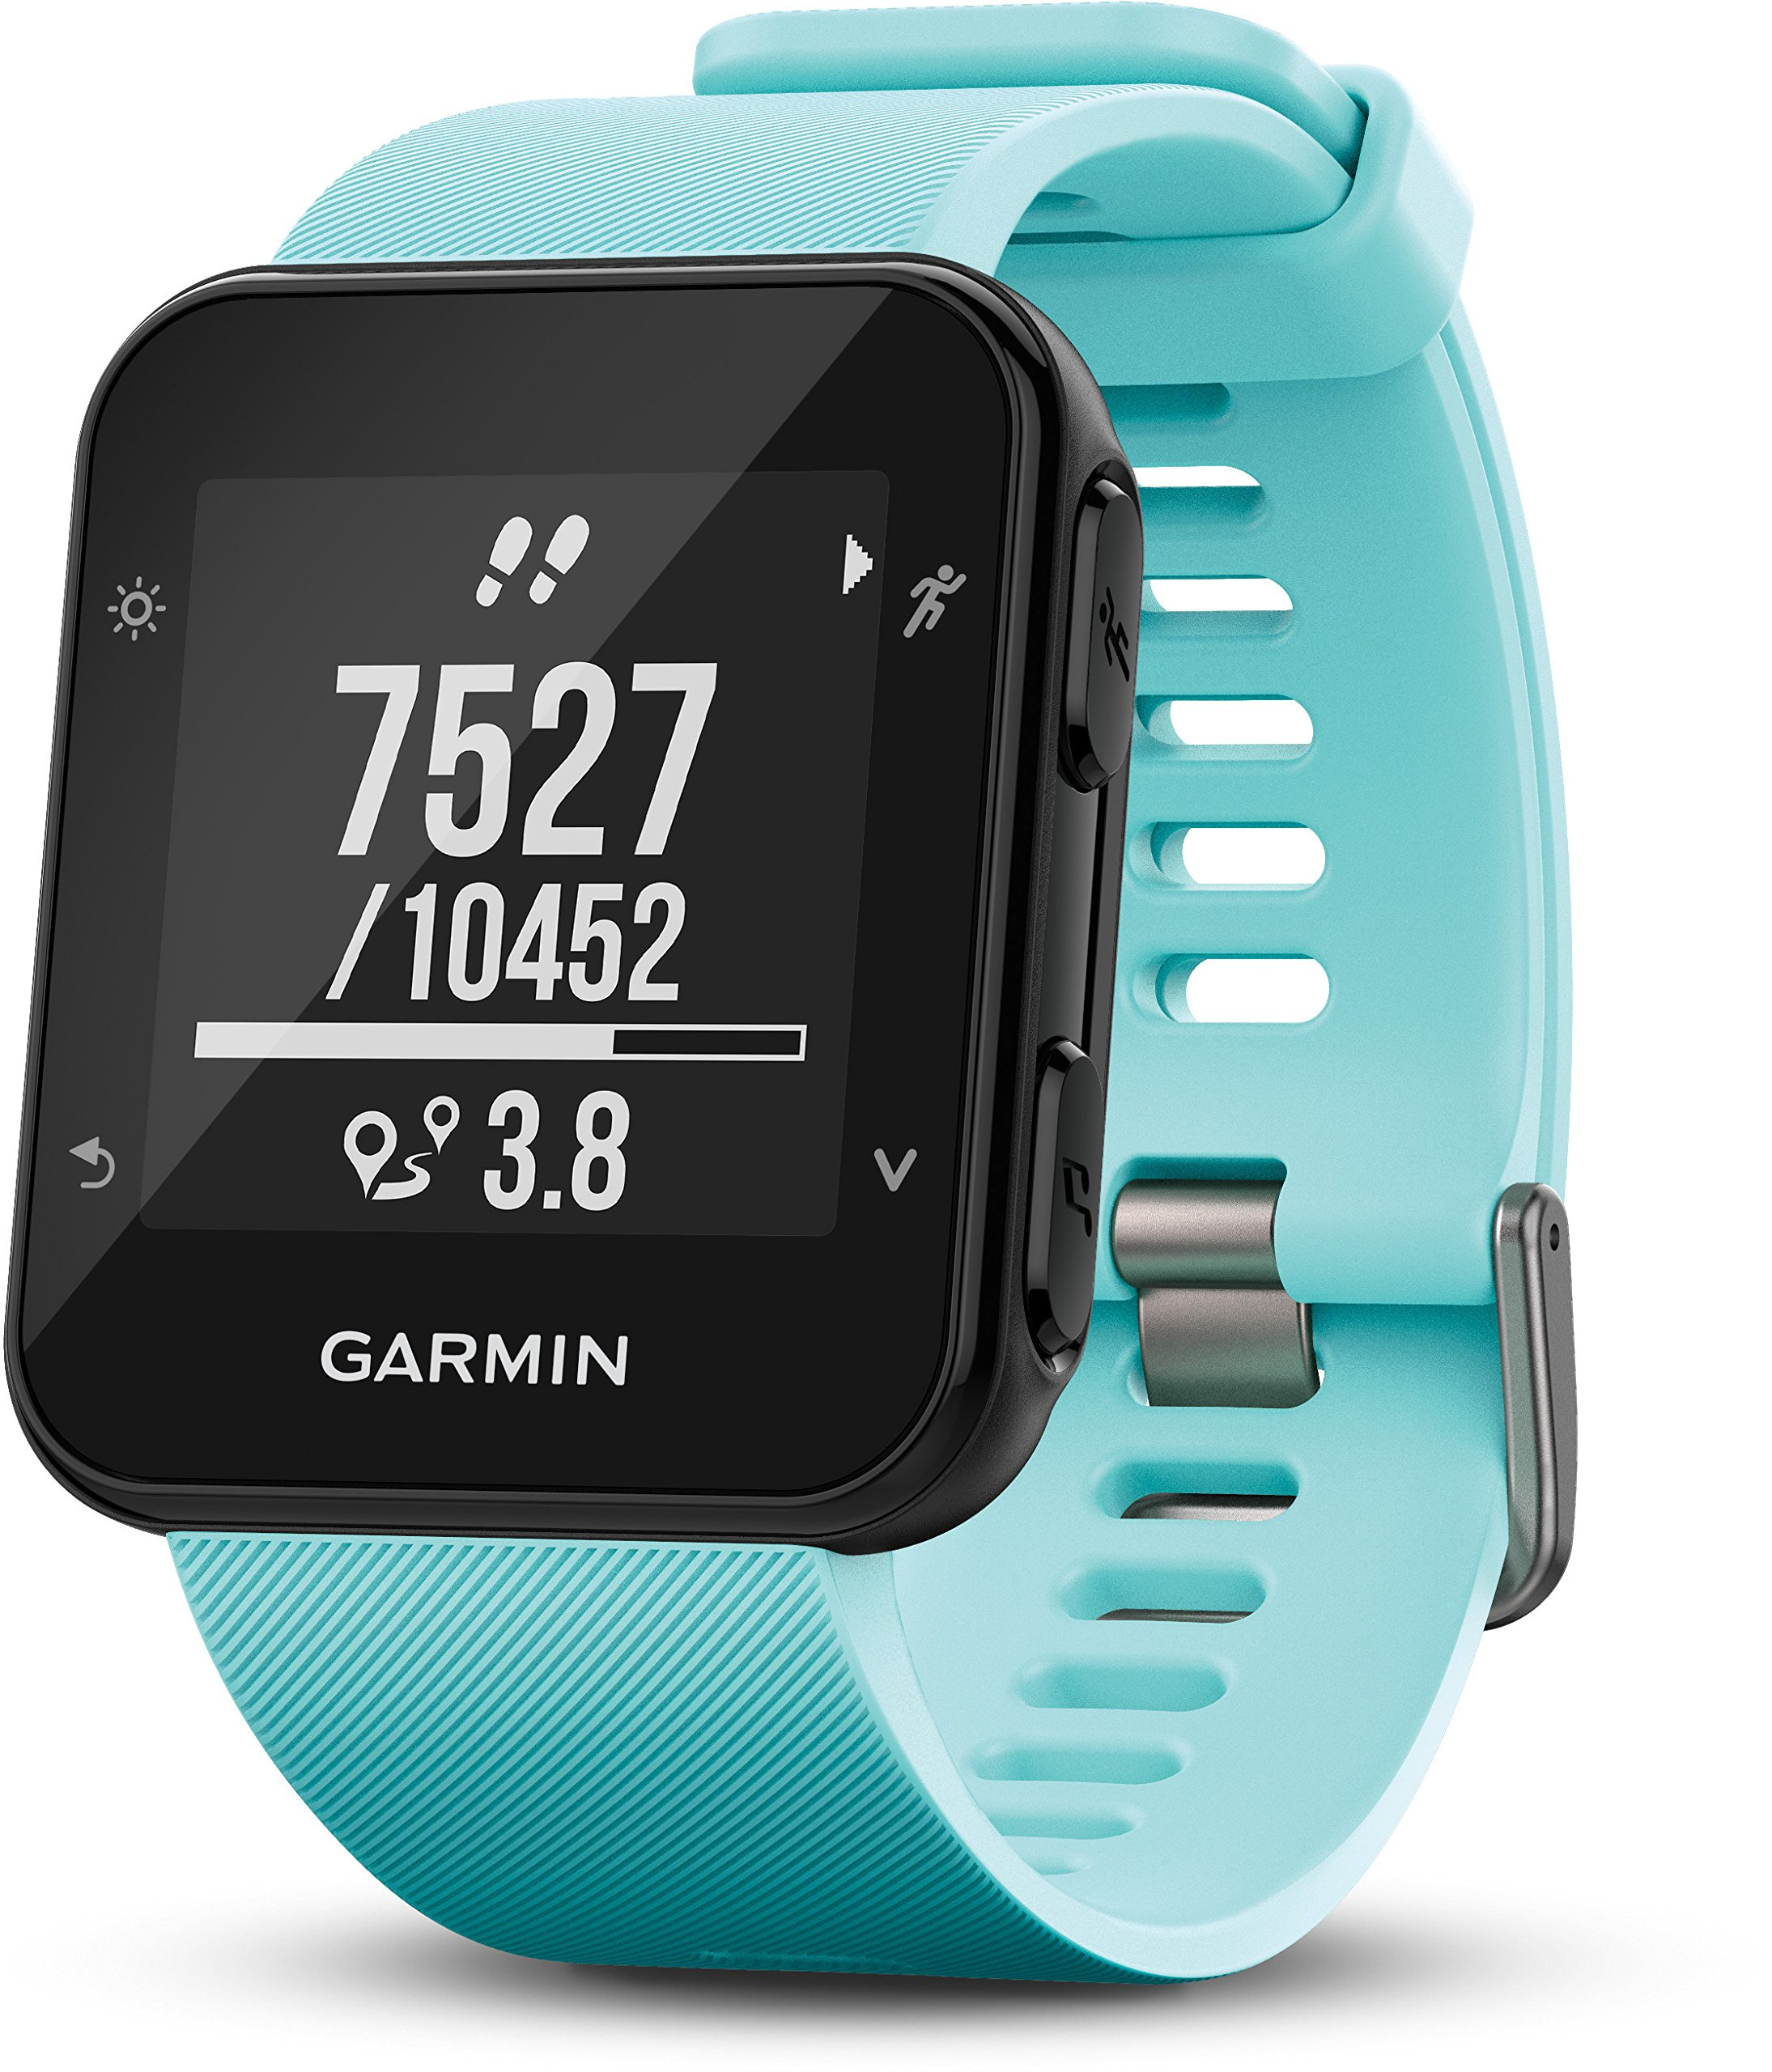 91pCorQYuhL - Garmin Forerunner 35 GPS Running Watch with Wrist-Based Heart Rate and Workouts,010-01689-12